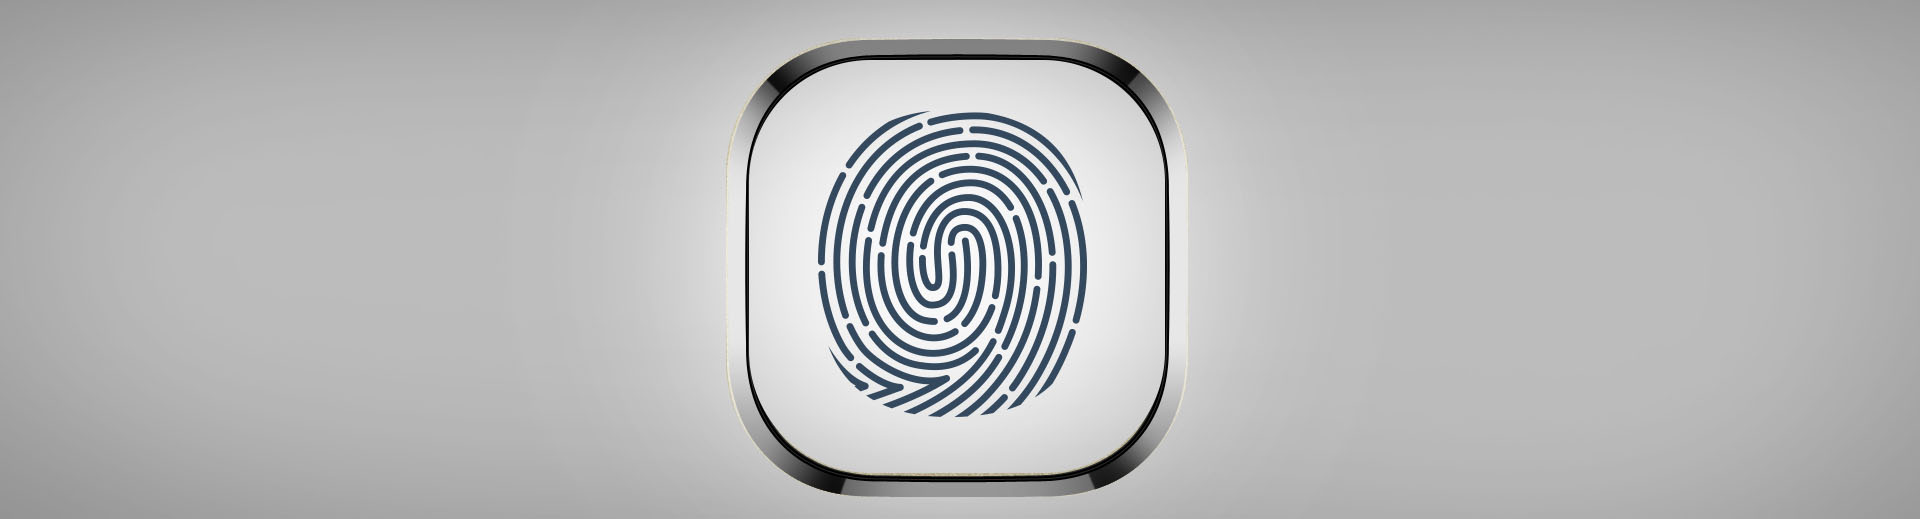 HUAWEI G7 Plus Fingerprint ID